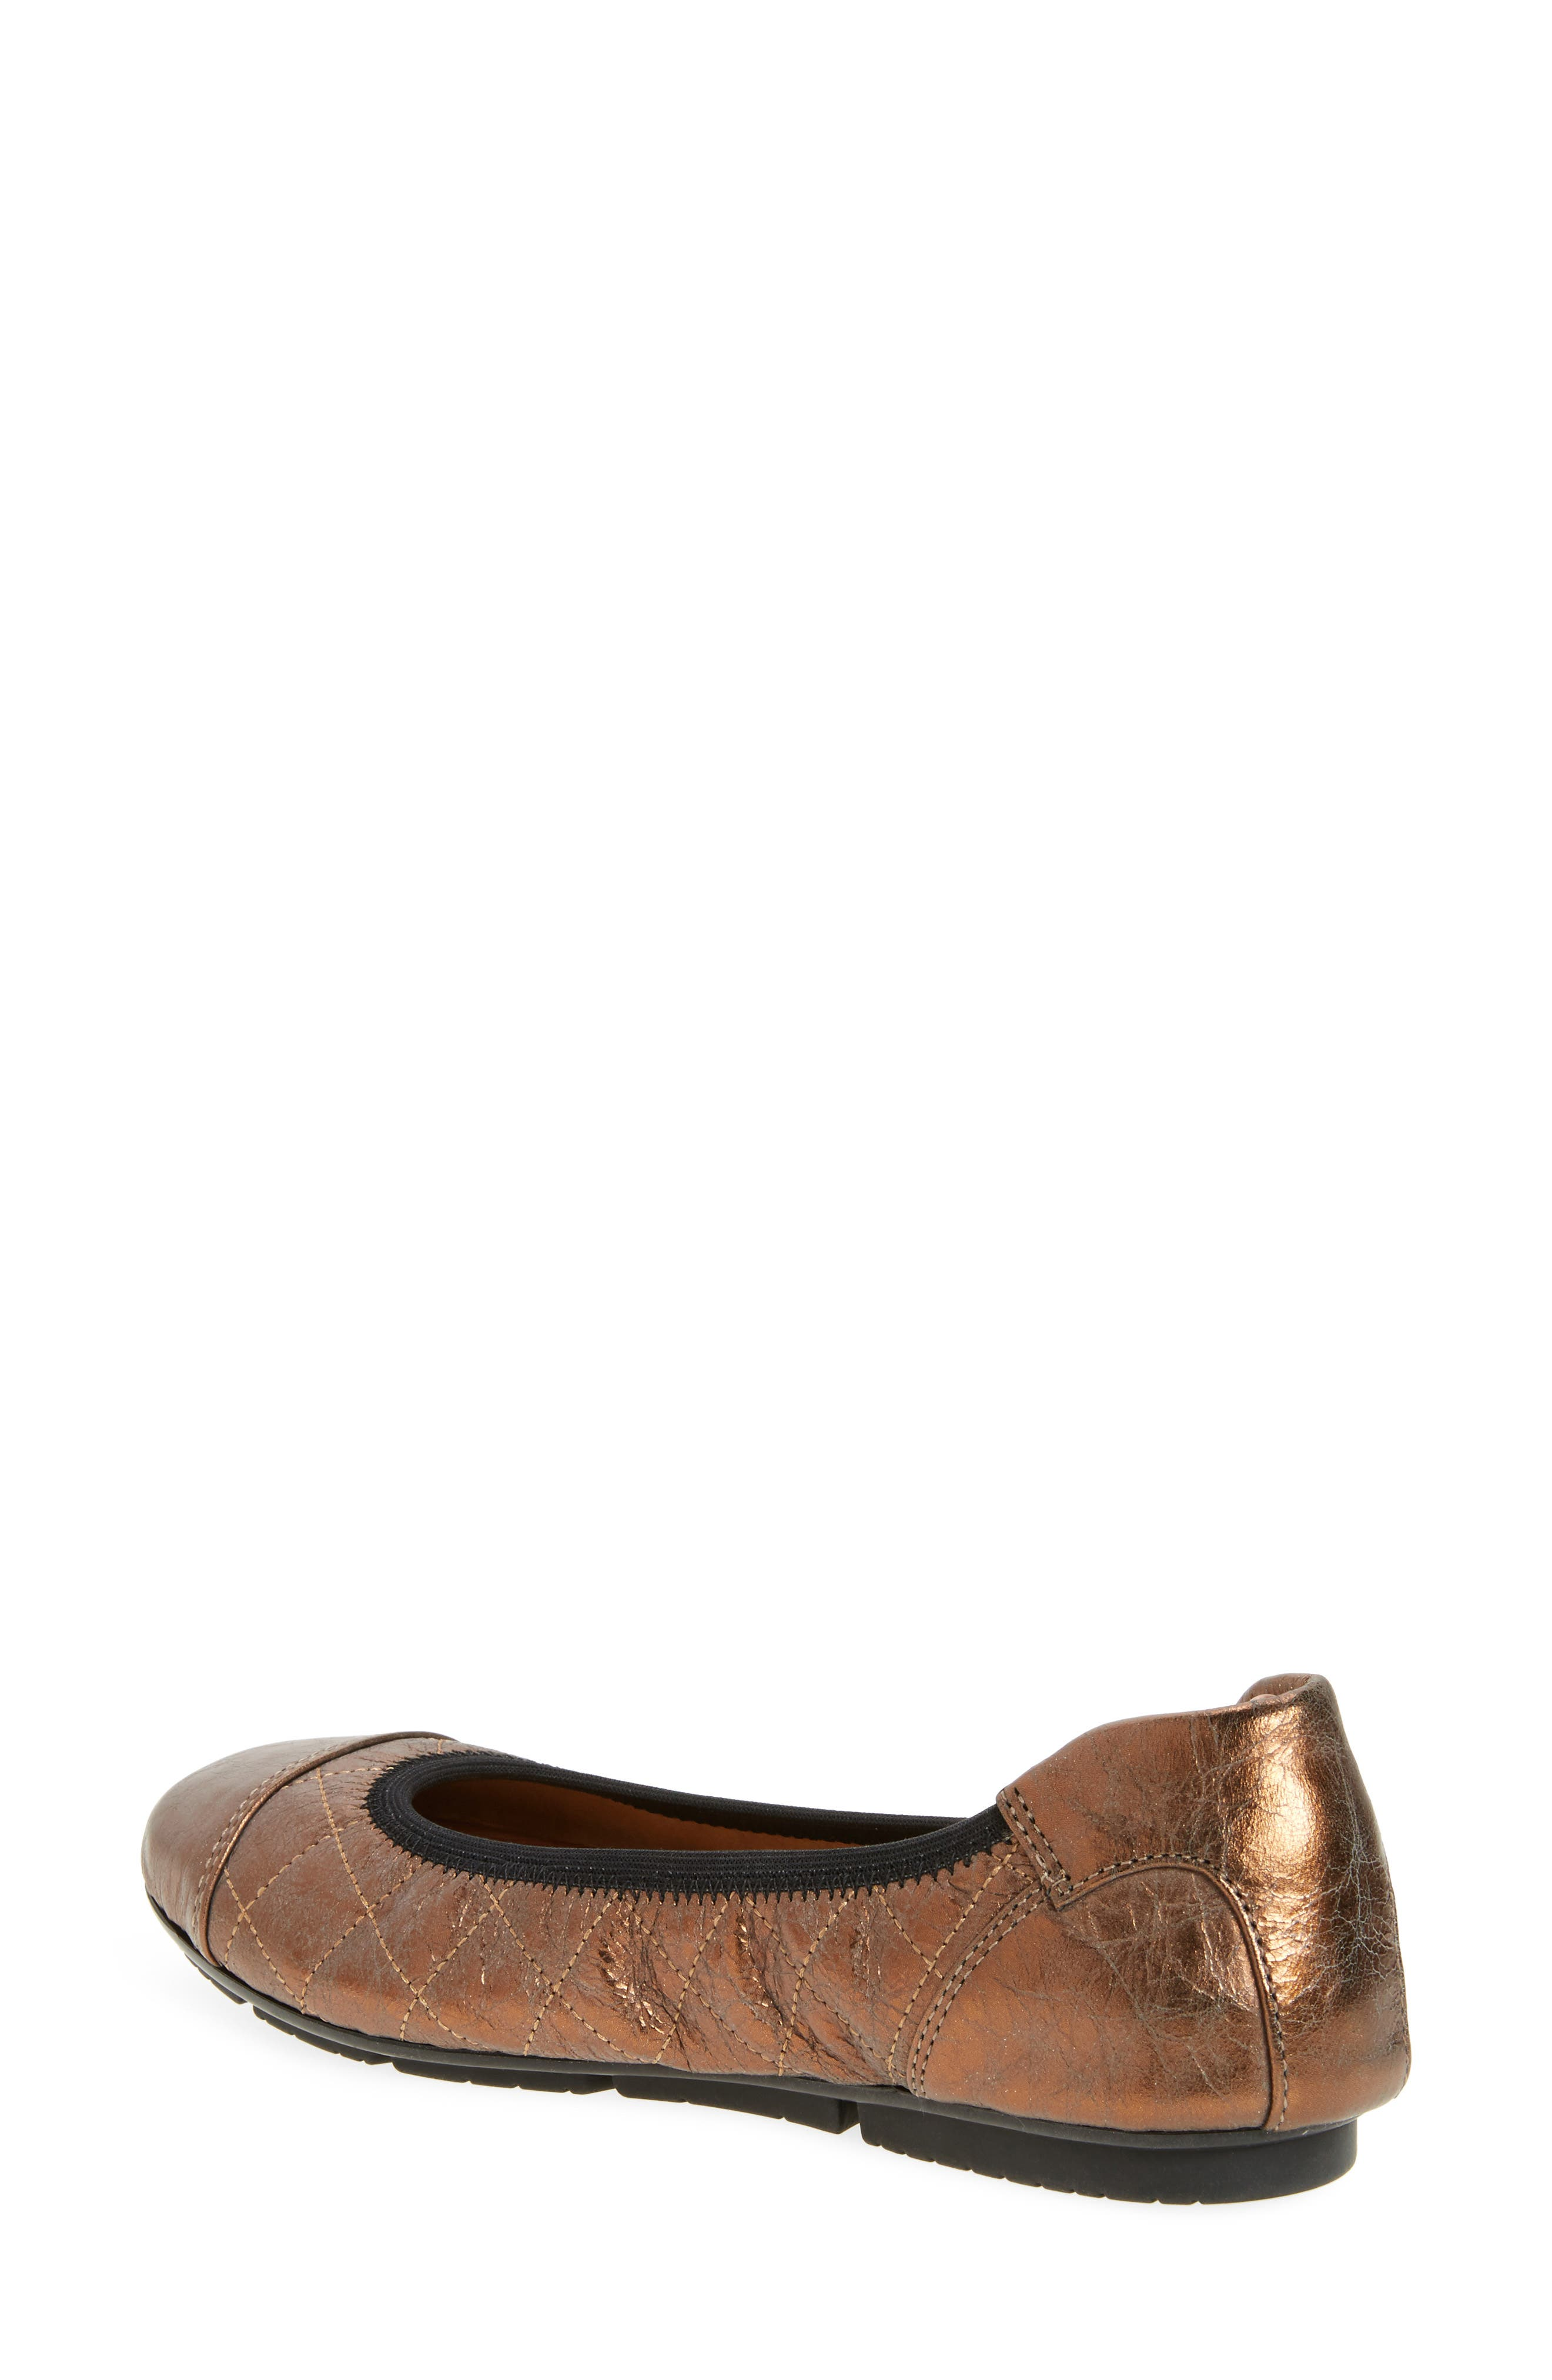 Ava Quilted Ballet Flat,                             Alternate thumbnail 6, color,